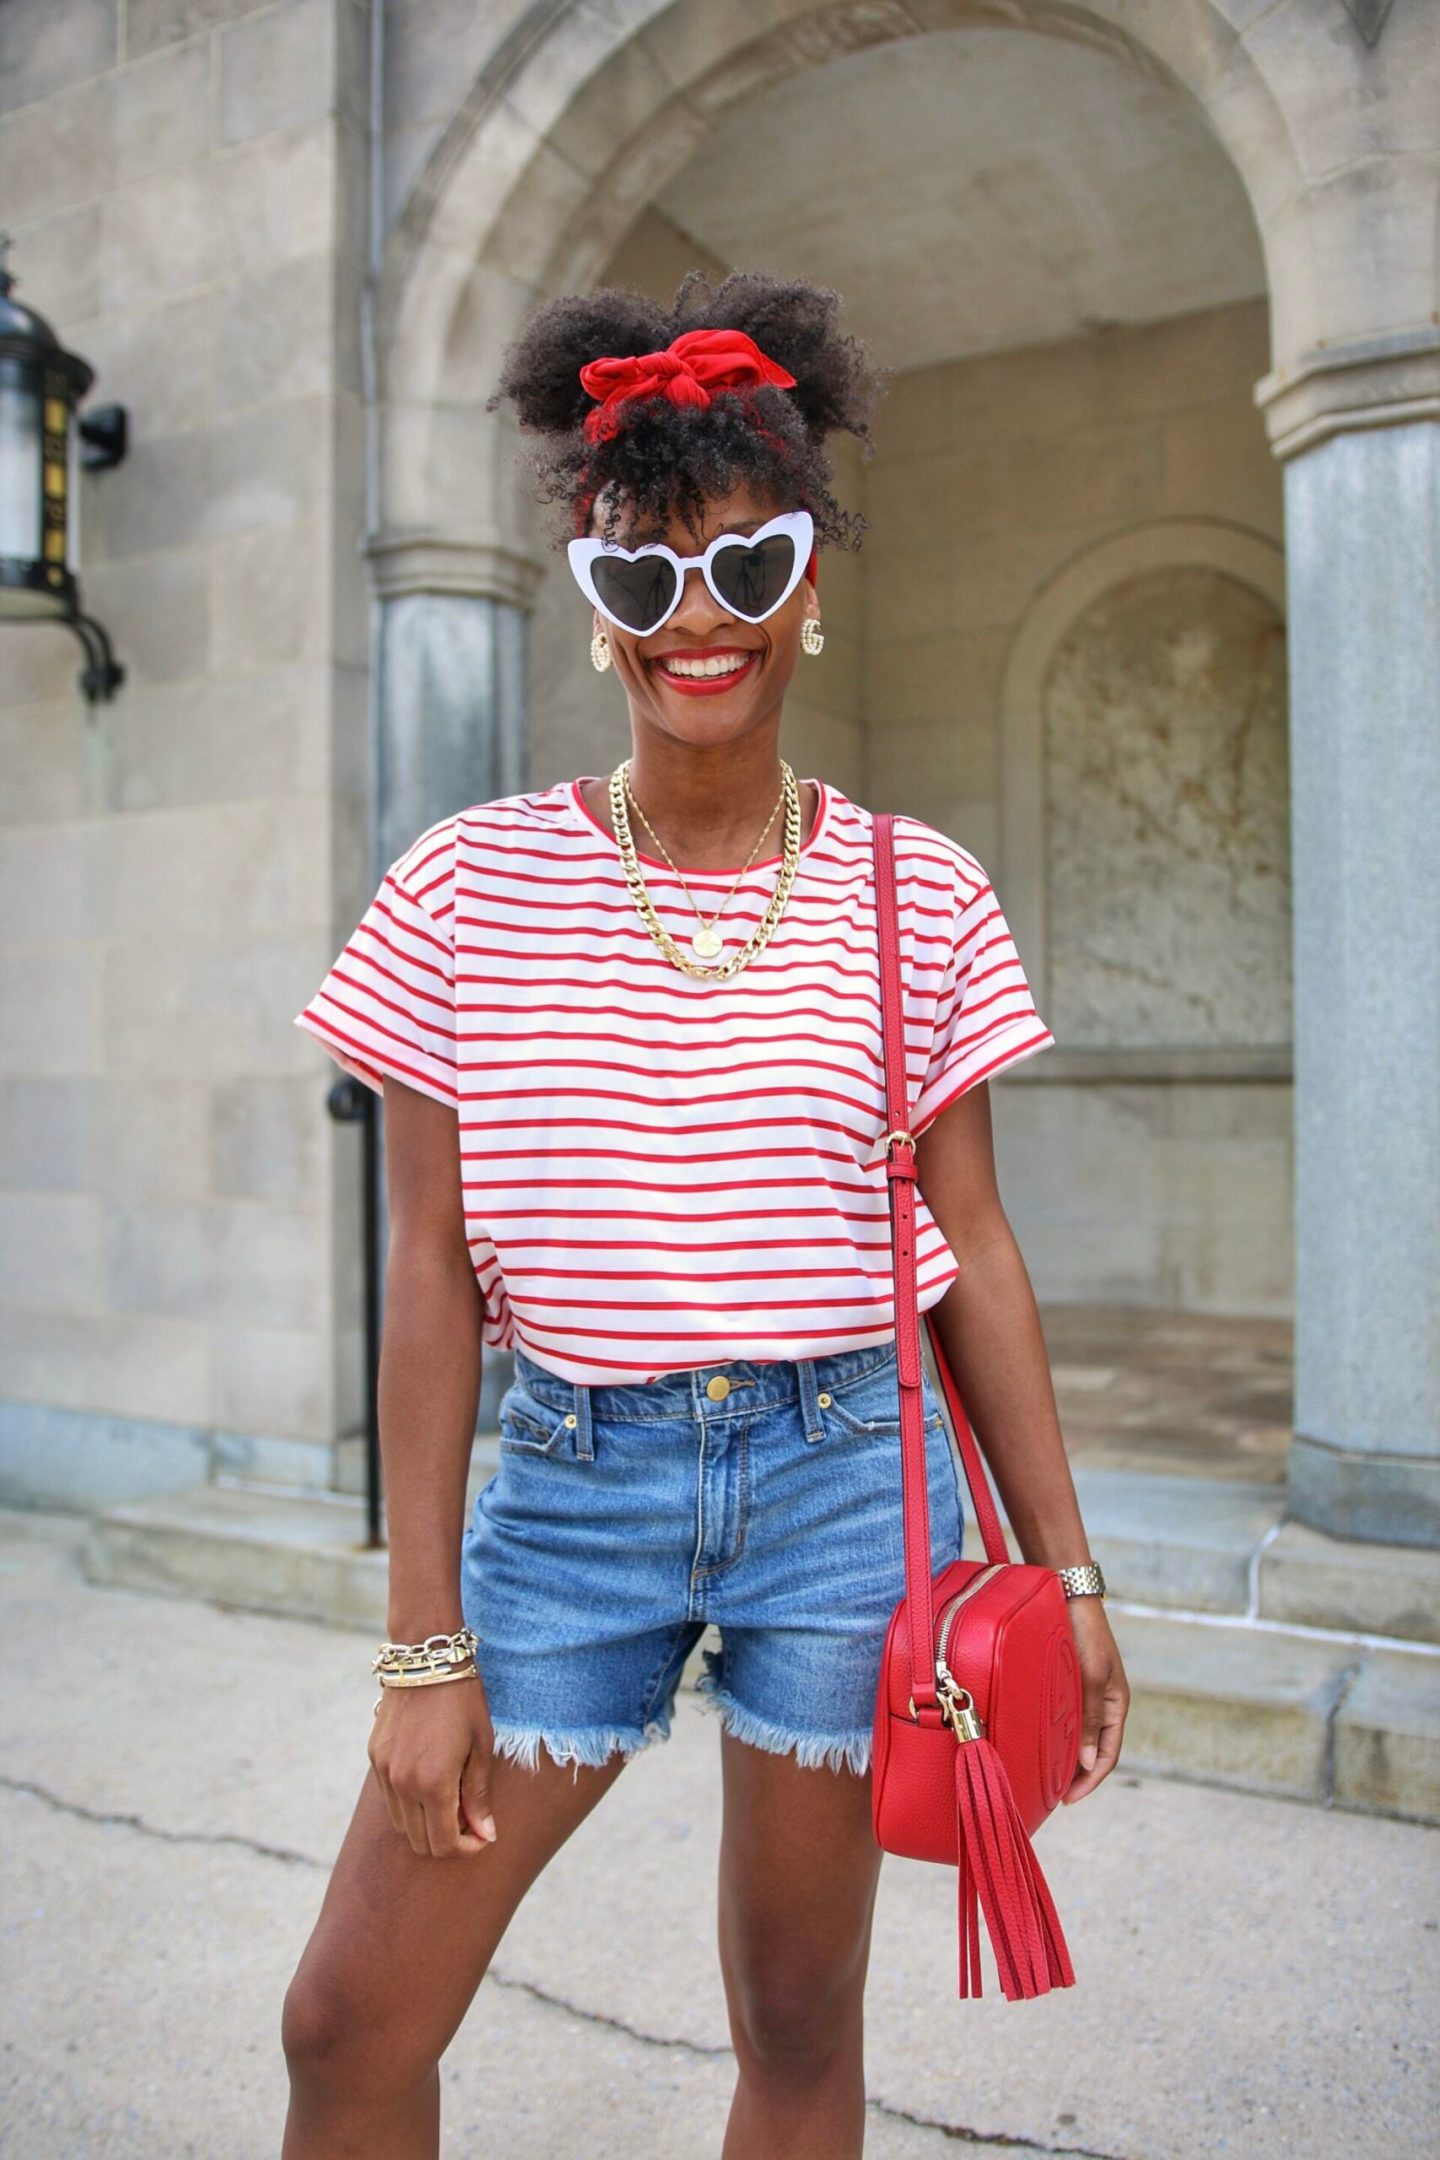 2020 Memorial Day Outfit Inspo + Sales